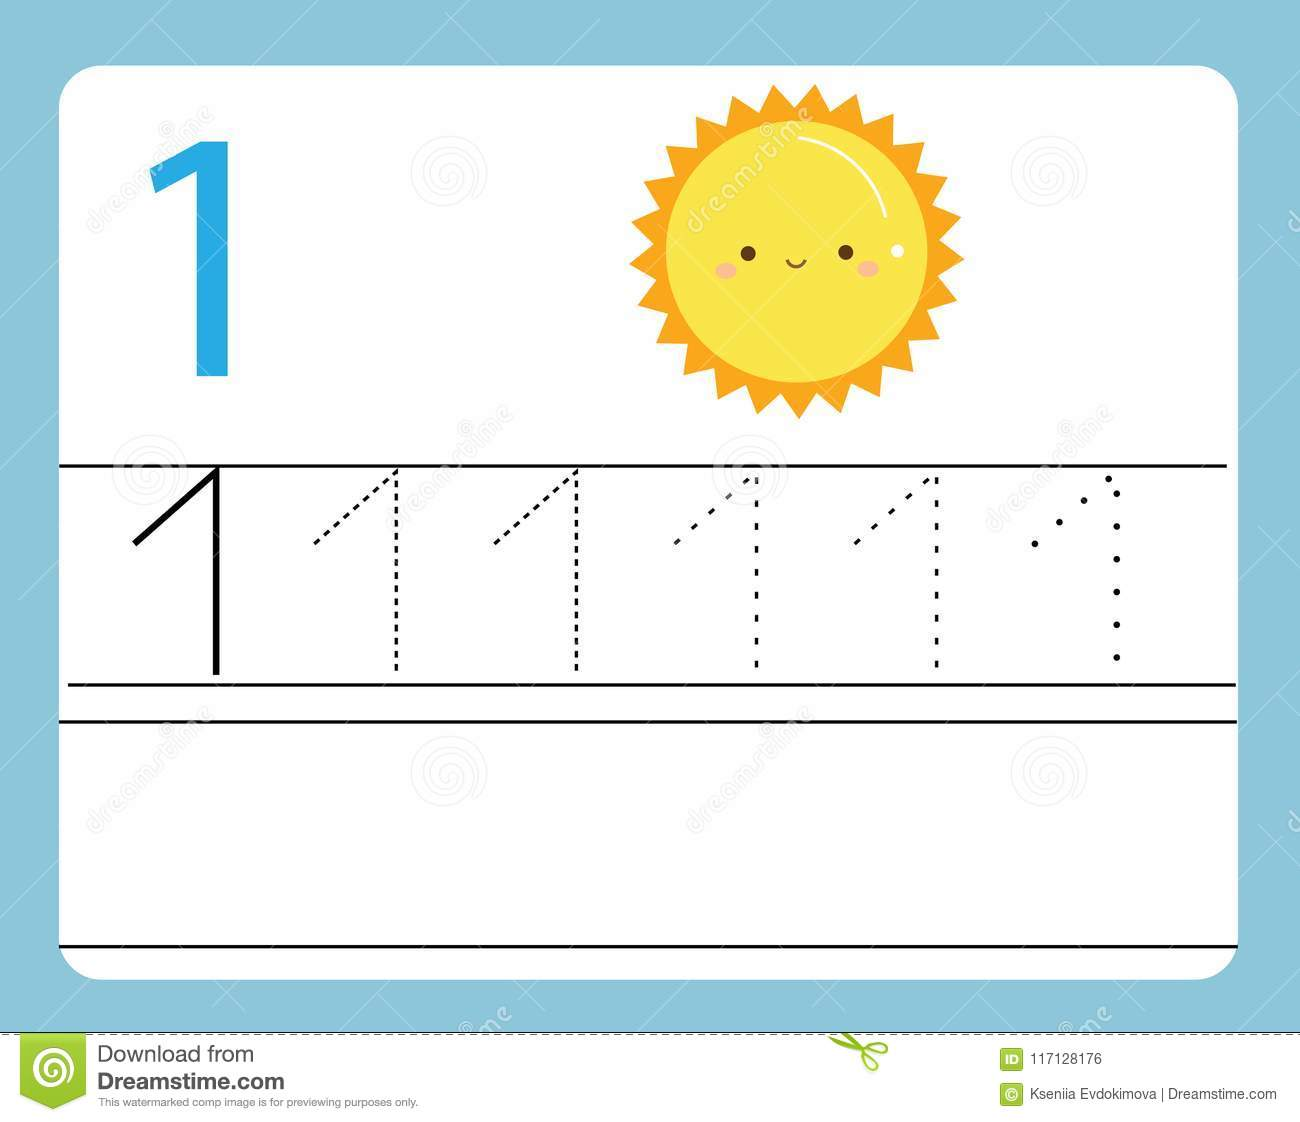 Handwriting Practice Learning Numbers With Cute